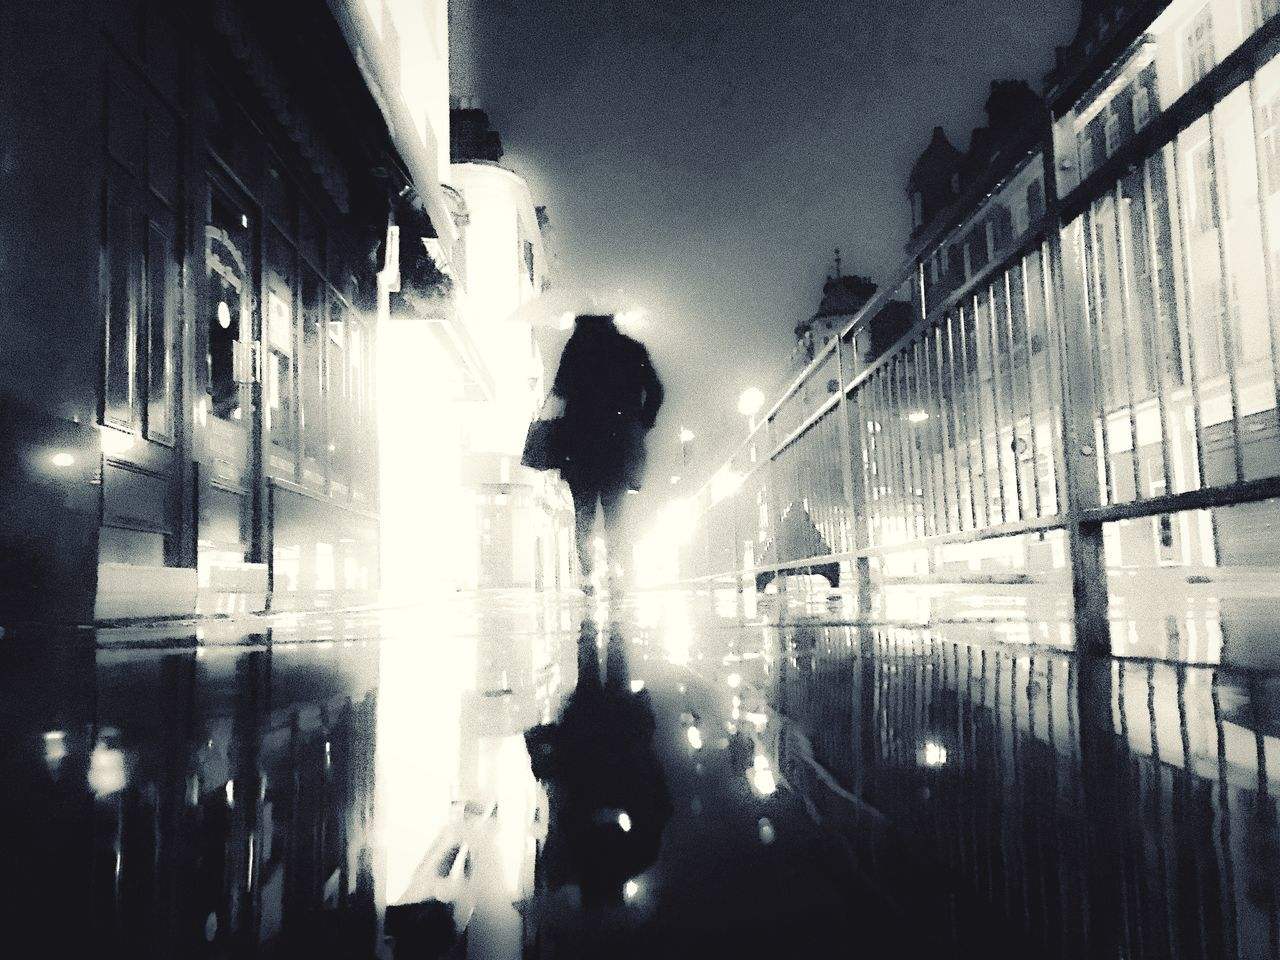 Urban Exploration Street Street Photography Reflection Wet Rear View Illuminated Low Angle View EyeEm Best Shots - The Streets EyeEm Best Shots Central London Fresh On Eyeem  The Week Of Eyeem Streetphotography Sidewalk Shop Windows Street Light Silhouette Vanishing Point Architecture Rain Umbrella One Person